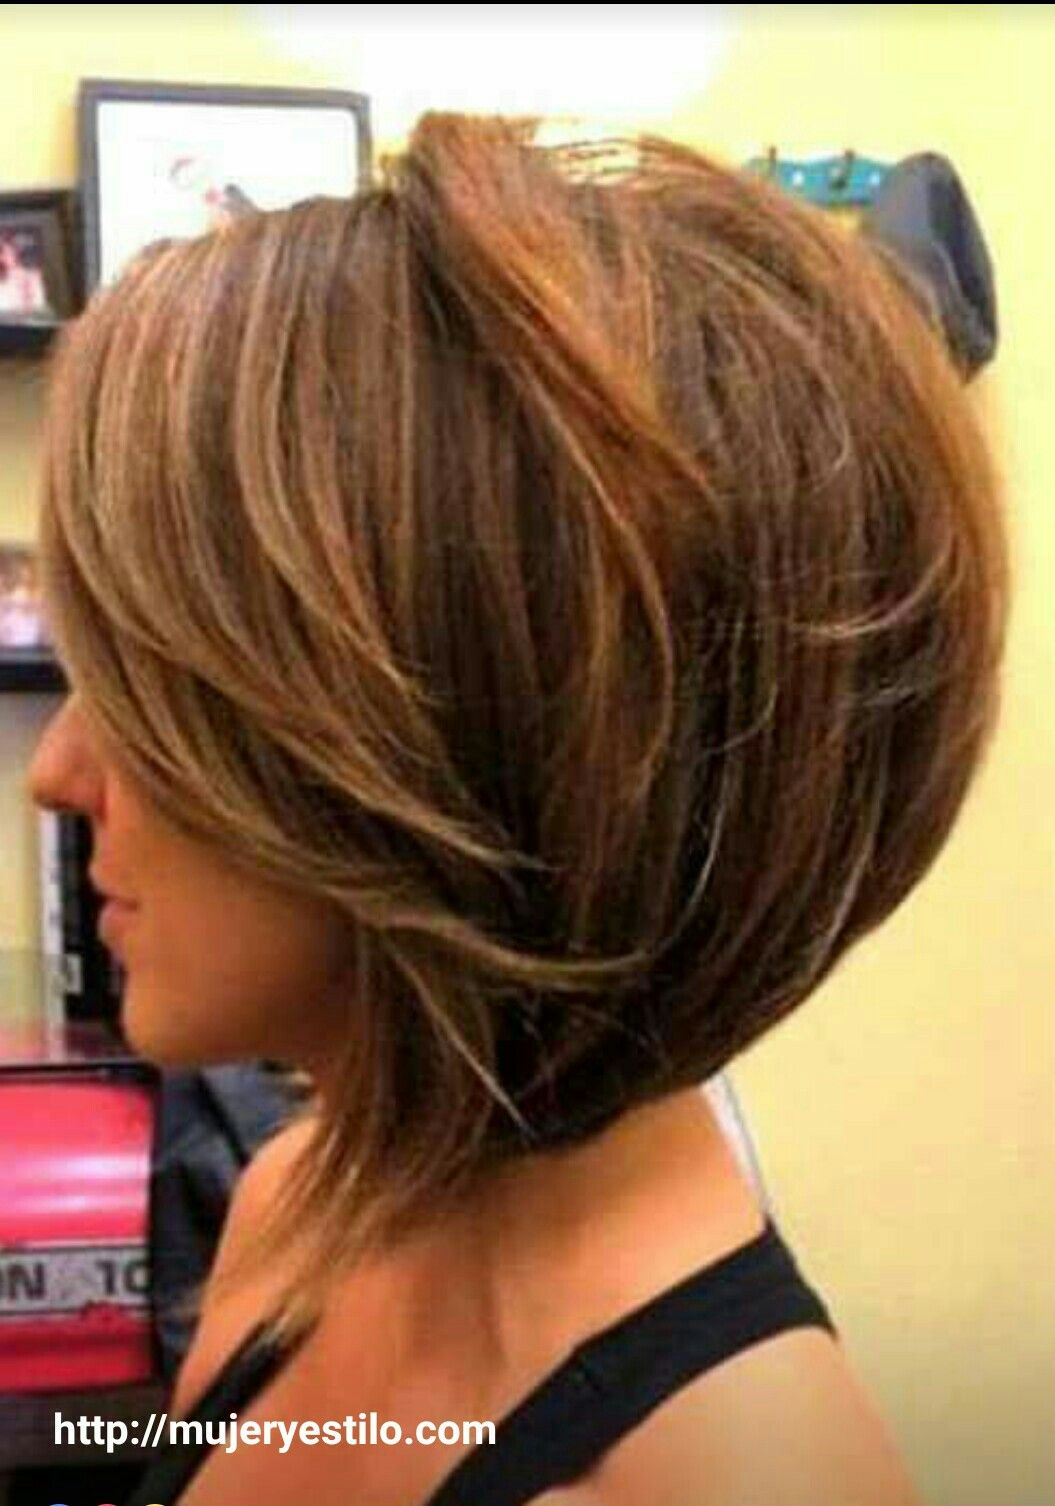 Pin By Lisa Rodriguez On Hair 1 In 2018 Pinterest Hair Styles